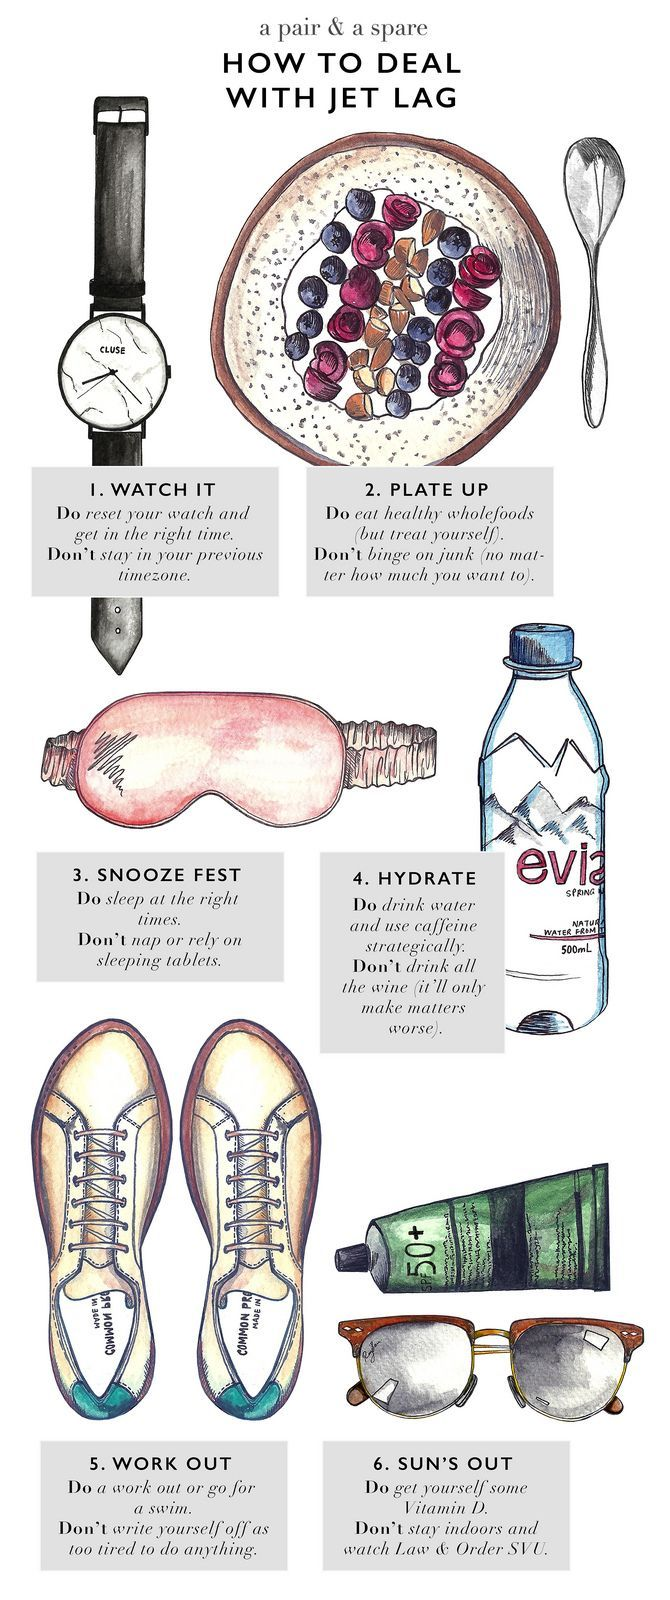 How To Deal With Jet Lag (The Do's and Don'ts)